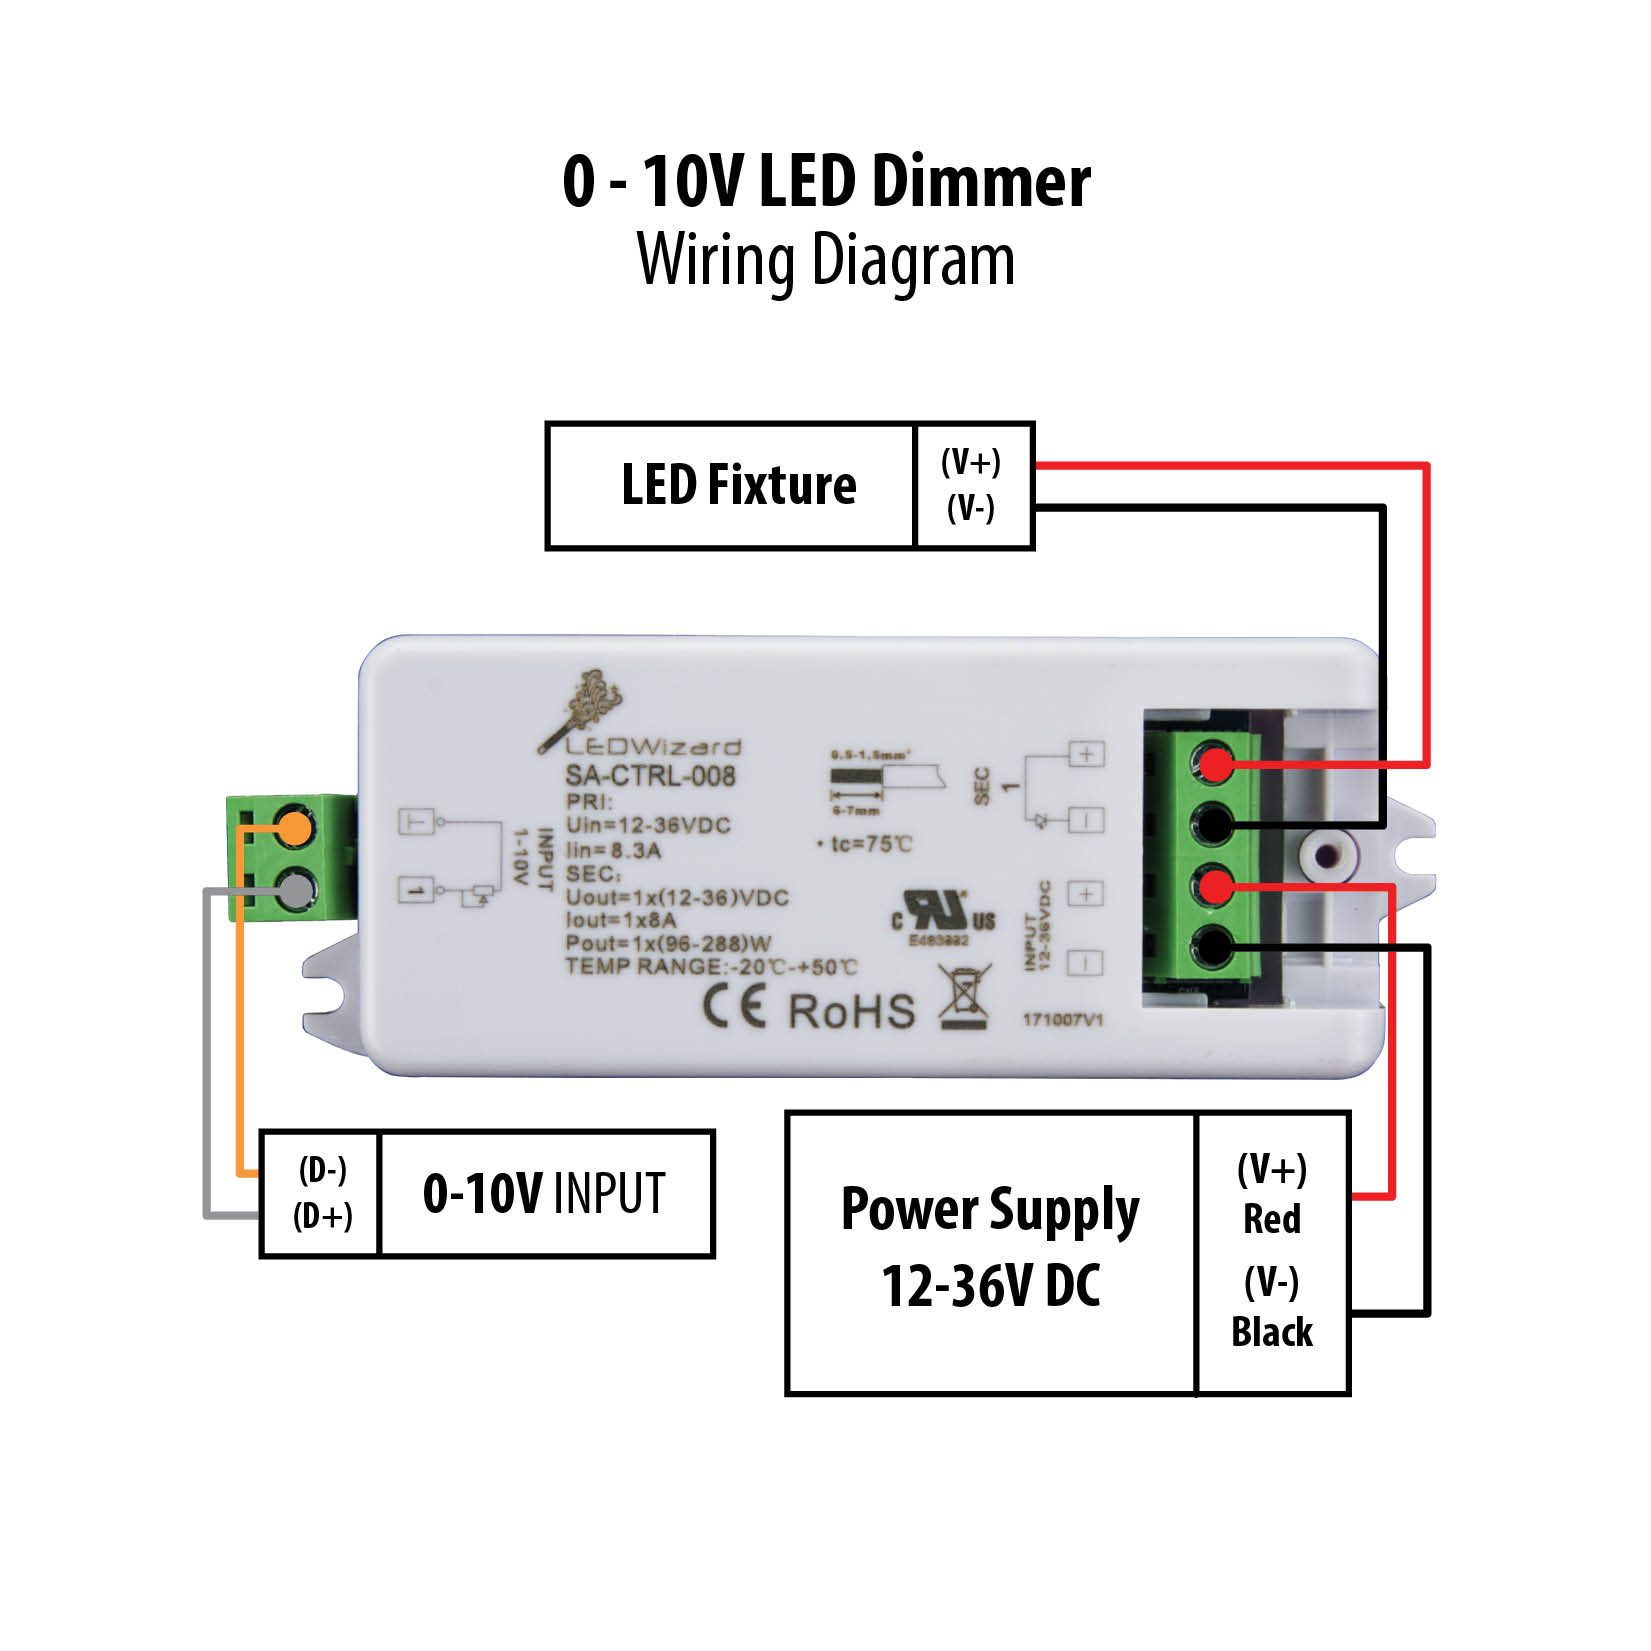 hight resolution of 12 volt dc led dimmer wiring diagram free picture wiring library 12 volt dc led dimmer wiring diagram